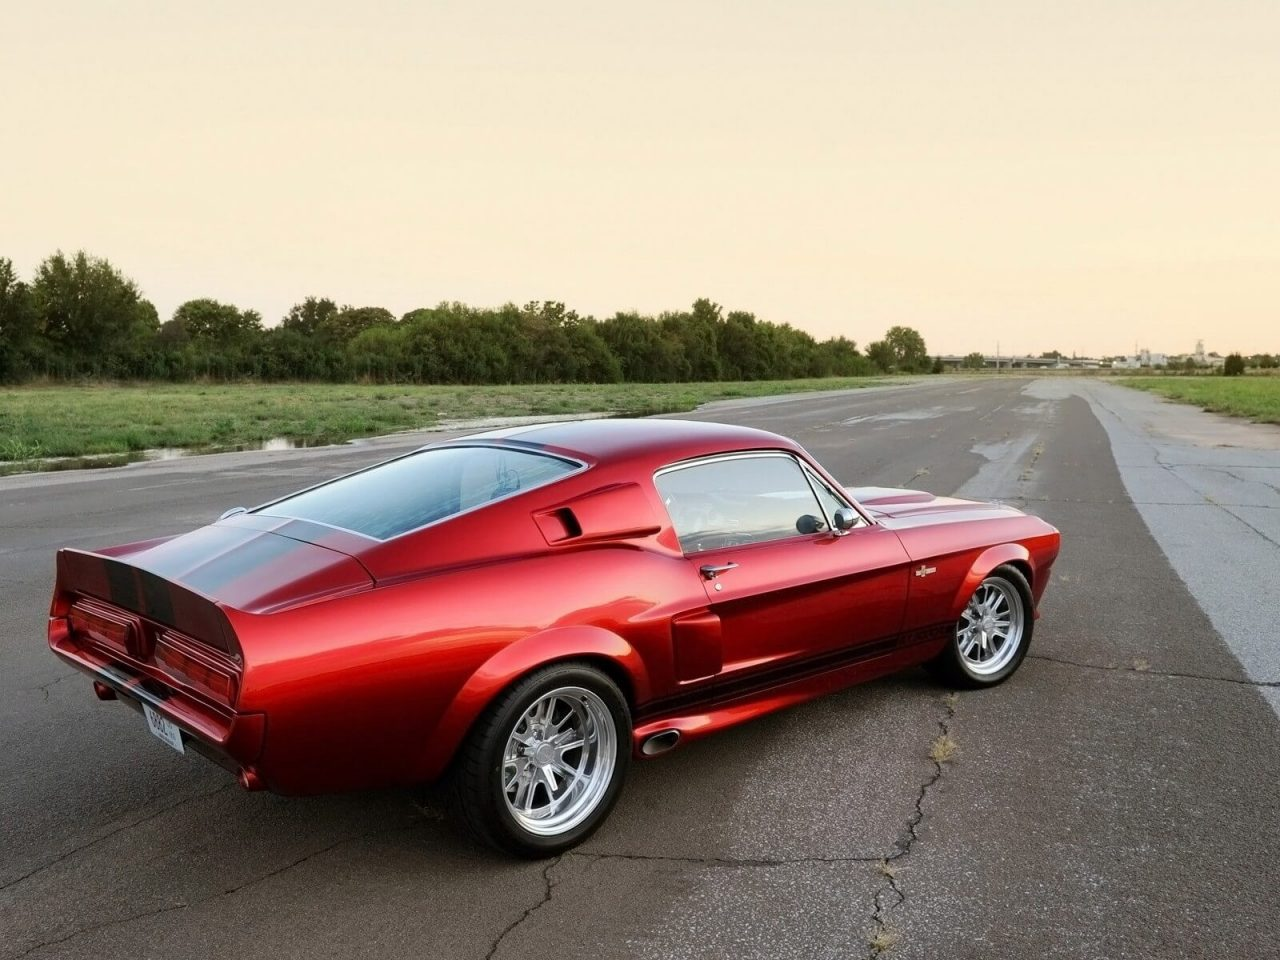 Ford Mustang 1967 Wallpaper   HD Wallpaper Background